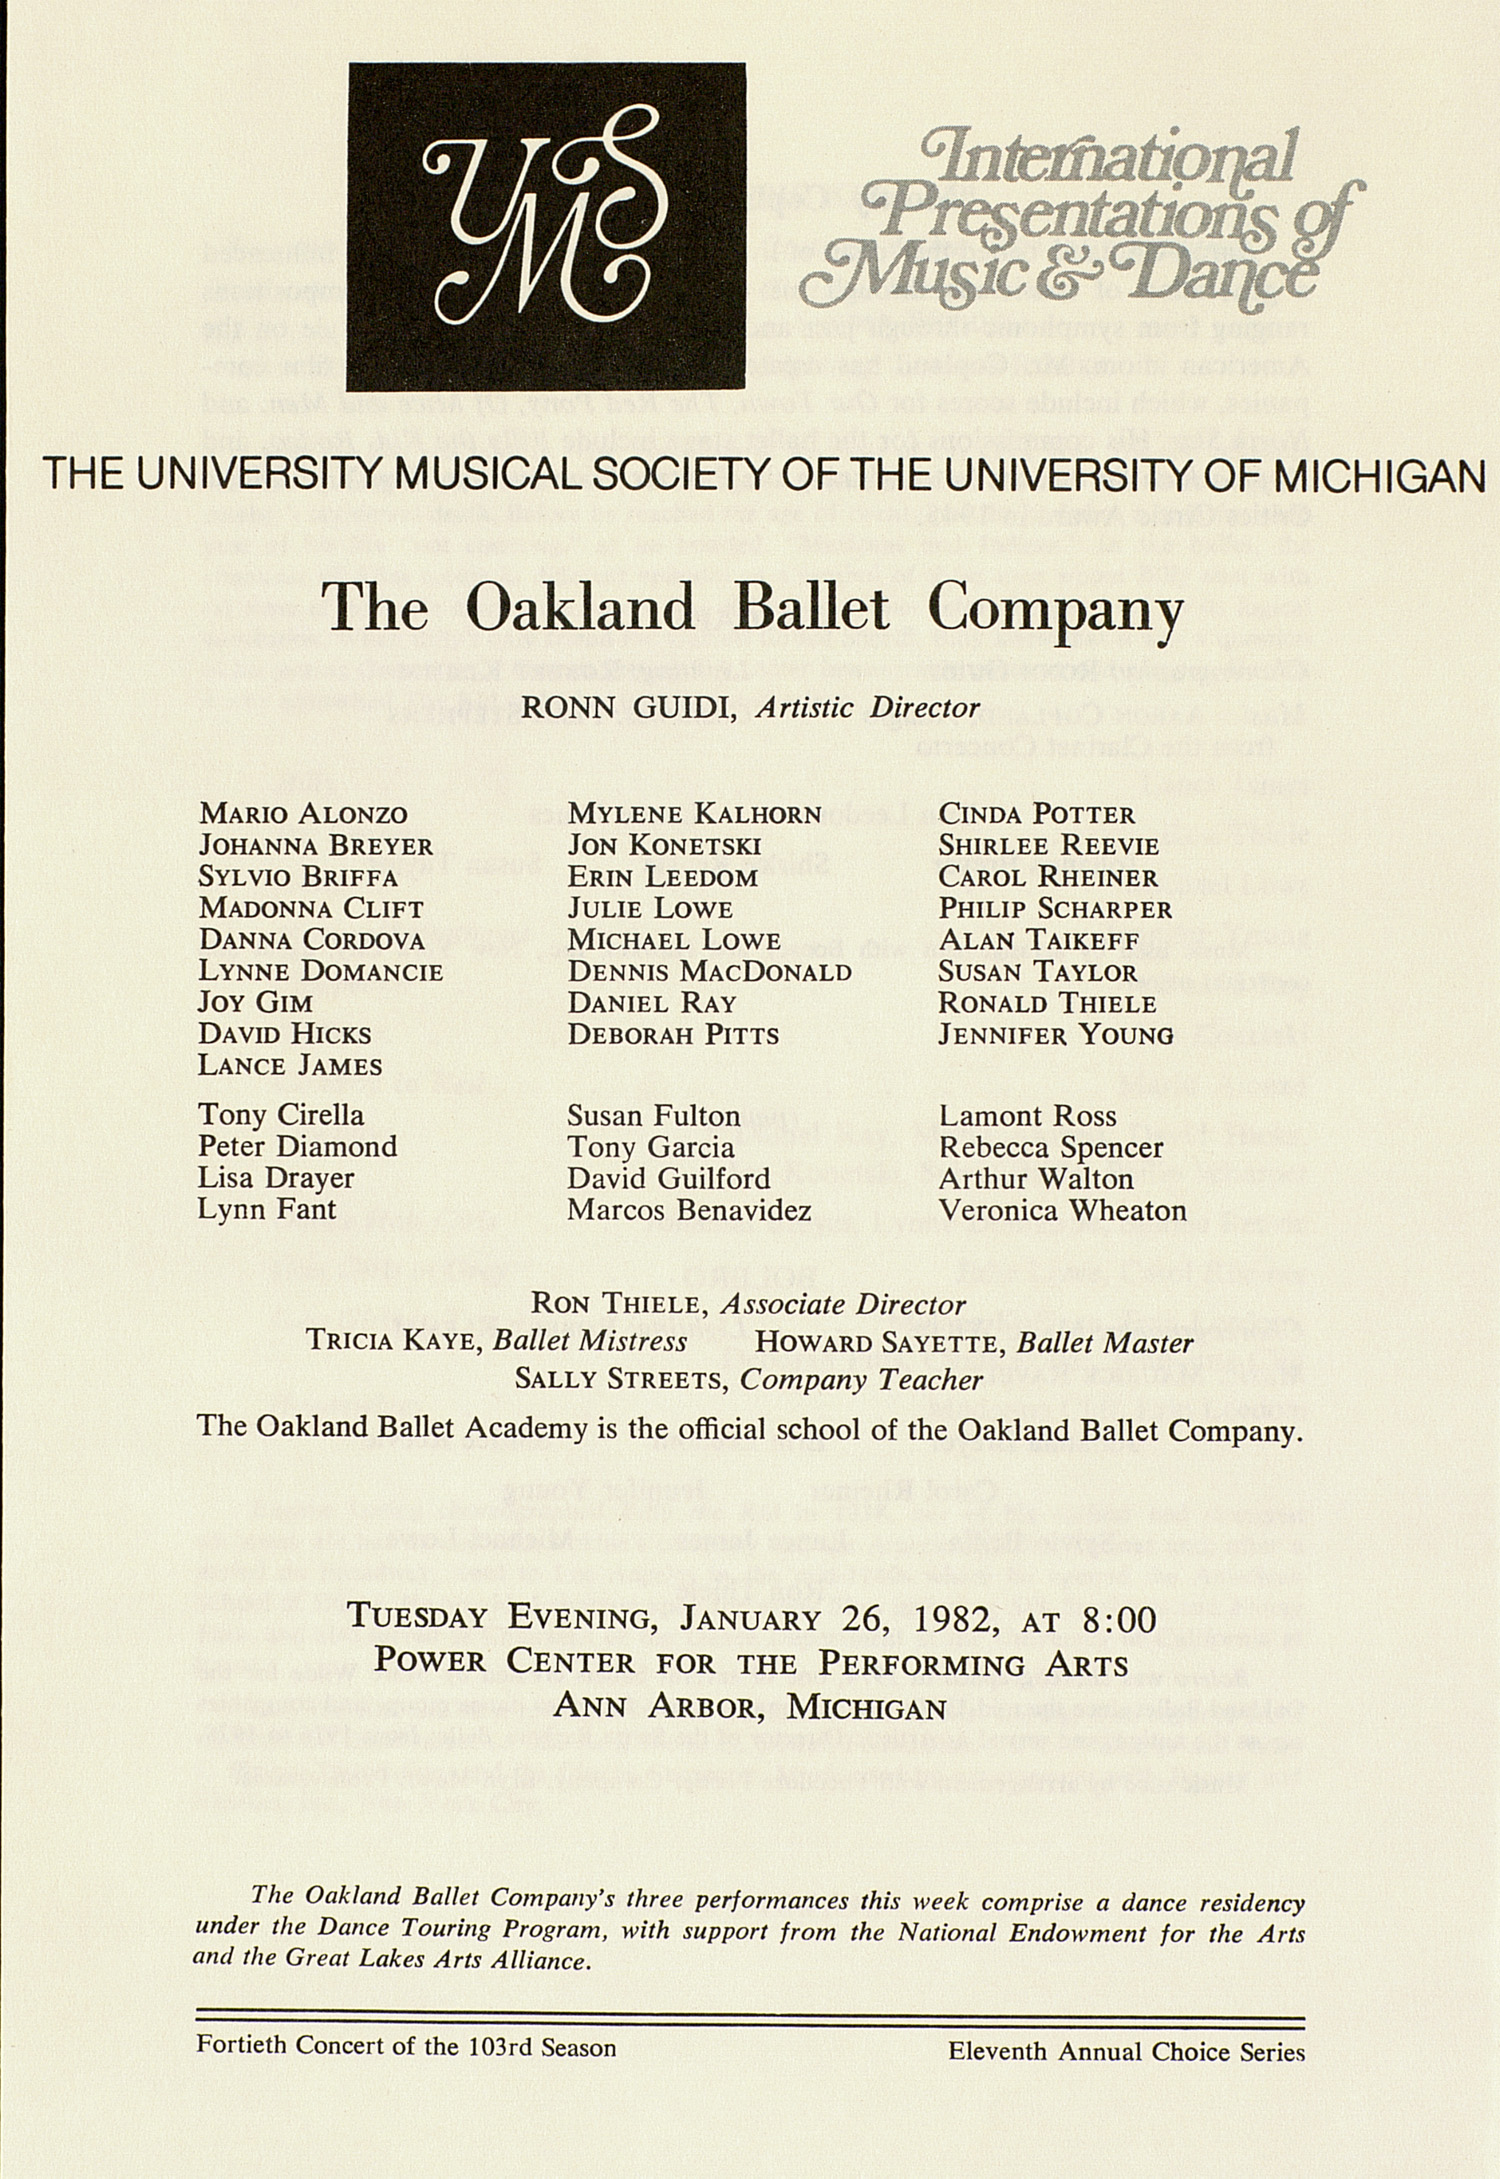 UMS Concert Program, January 26, 1982: International Presentations Of Music & Dance -- The Oakland Ballet Company image